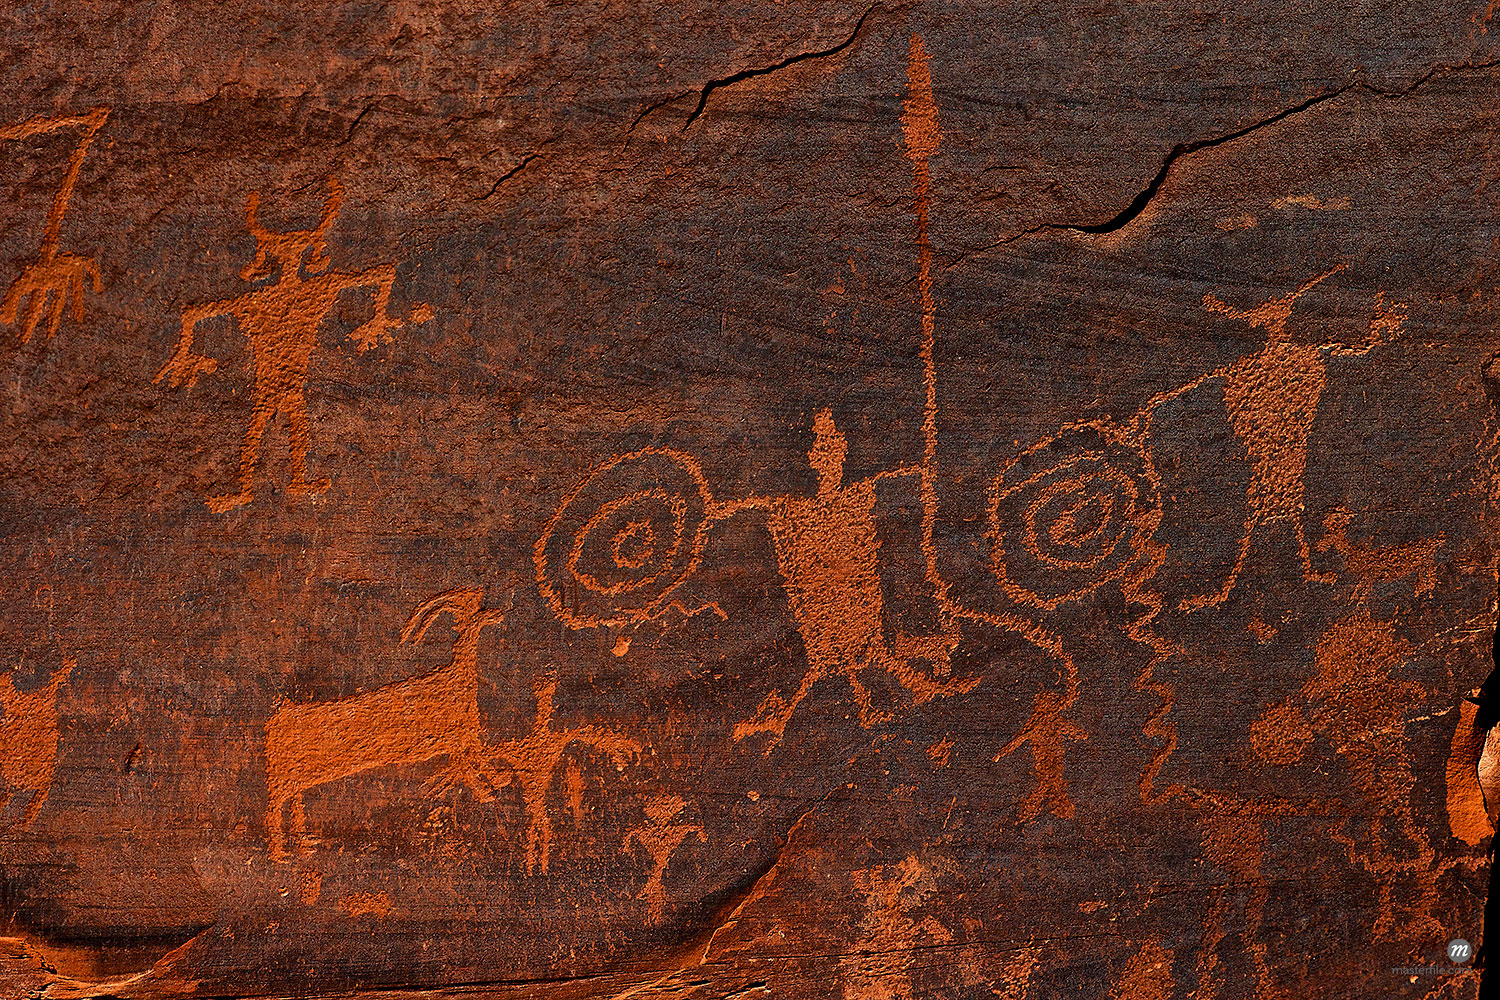 Horned anthropomorphs holding shields, Formative Period Petroglyphs, Utah Scenic Byway 279, Potash Road, Moab, Utah, United States of America, North America  © Robert Harding / Masterfile